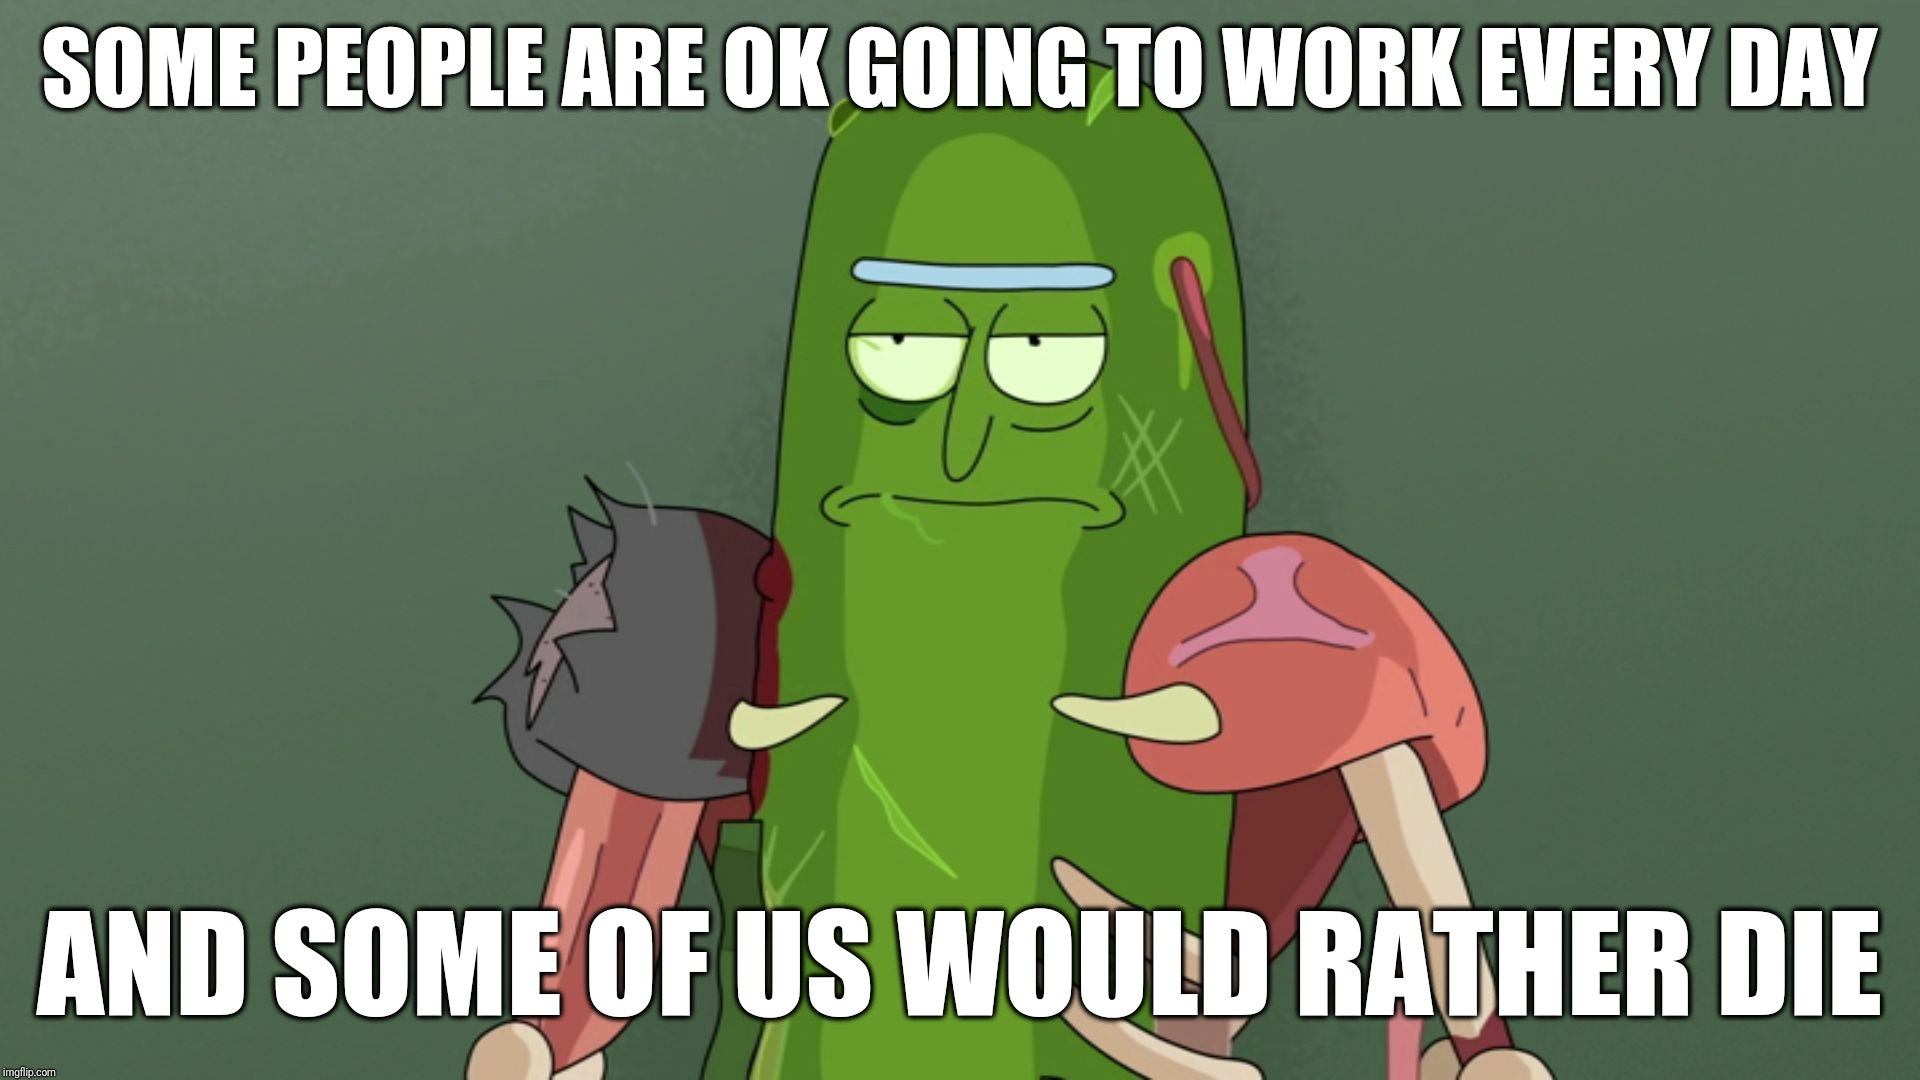 pickle rick rat suit | SOME PEOPLE ARE OK GOING TO WORK EVERY DAY AND SOME OF US WOULD RATHER DIE | image tagged in pickle rick rat suit | made w/ Imgflip meme maker